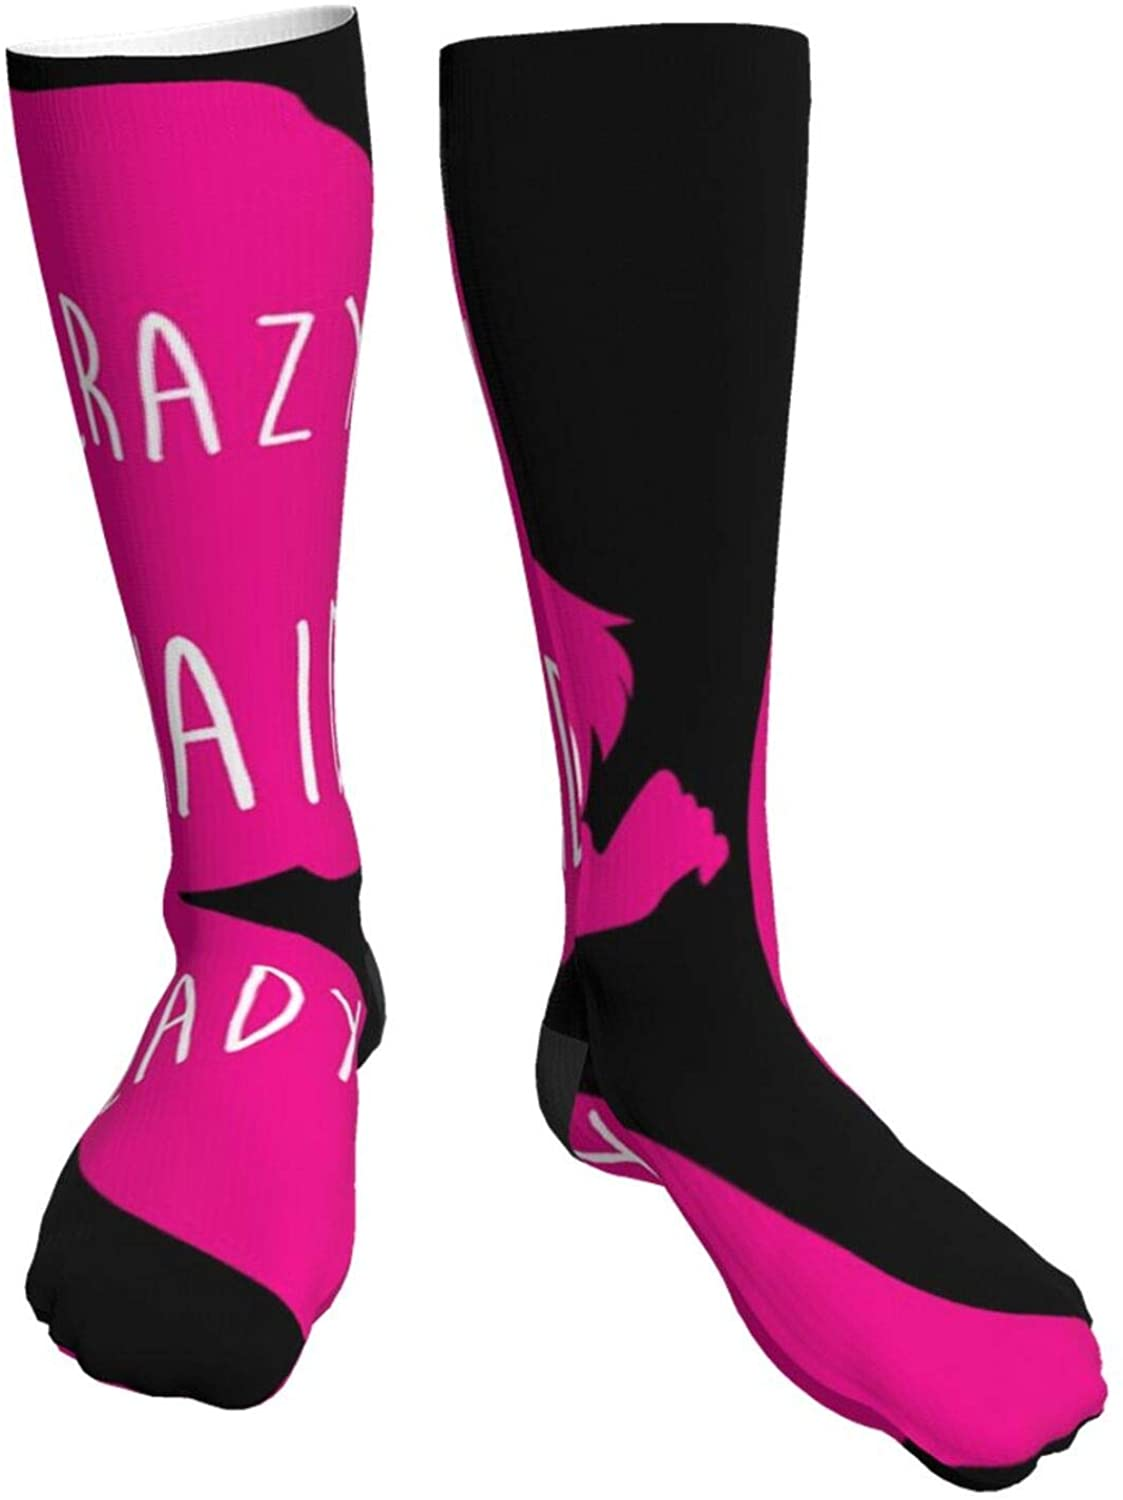 Mens Heavy Thick Socks Crazy Mermaid Lady Soft Comfort Crew Socks Casual Athletic 20in Long The-Calf Sock